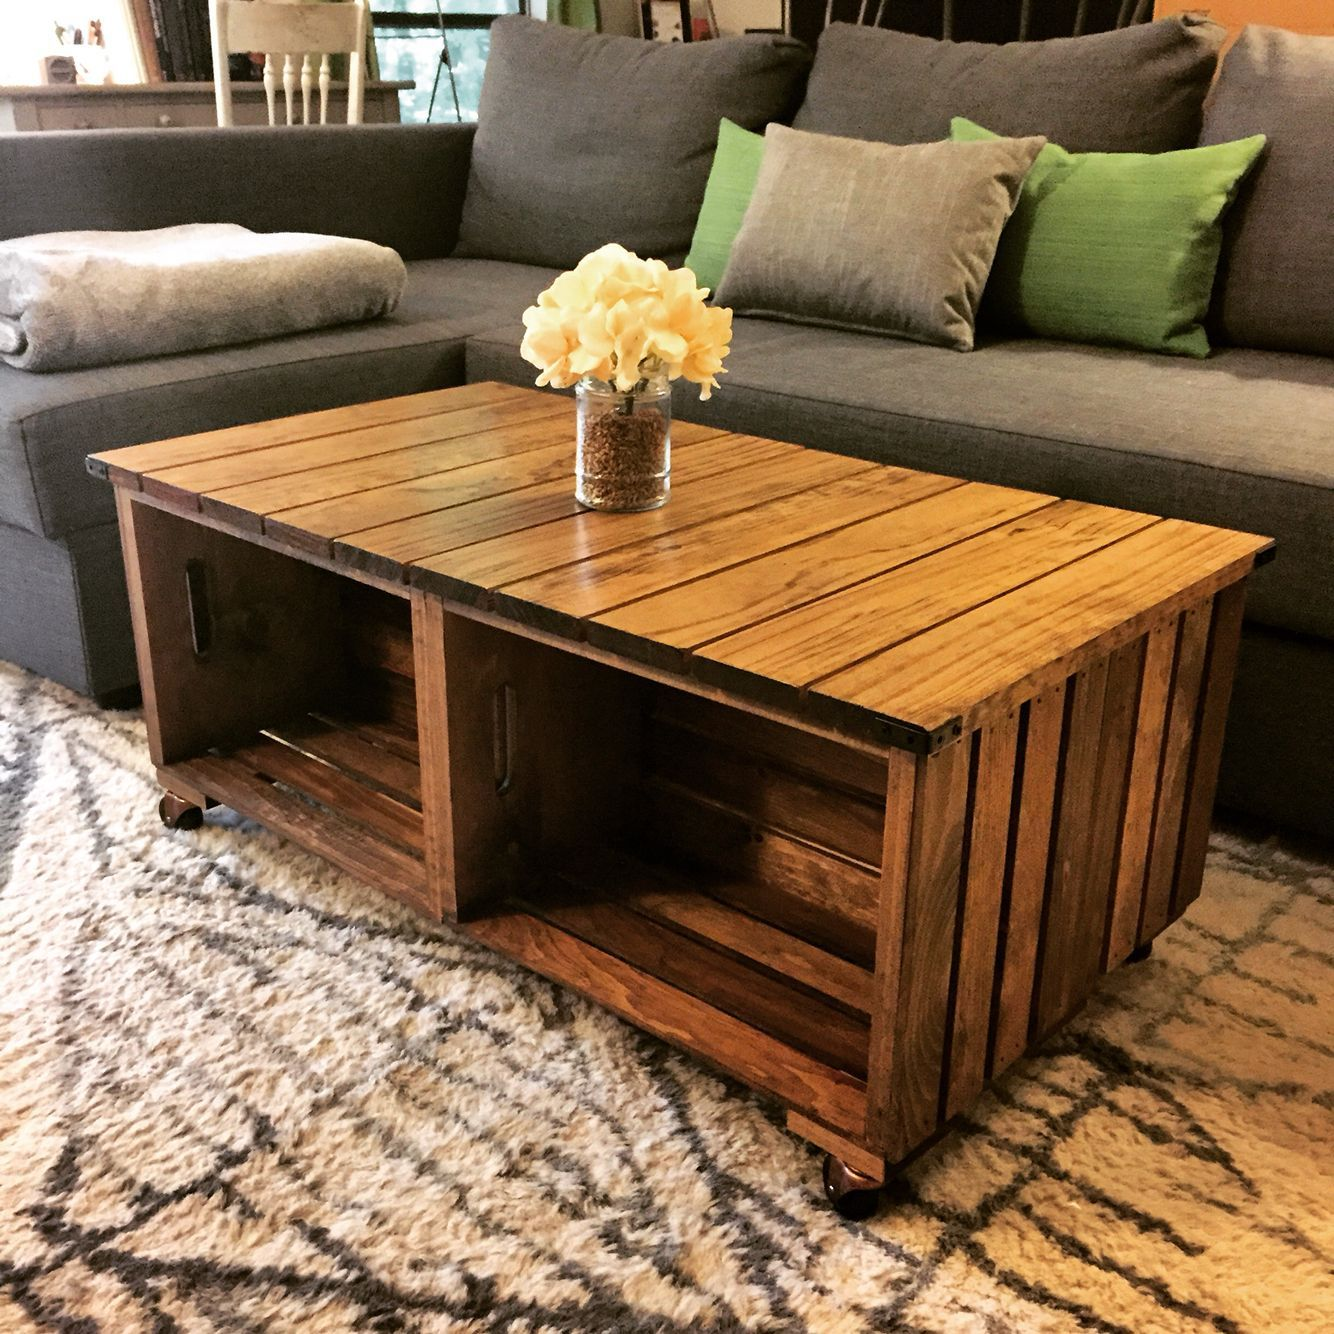 24 X 36 Coffee Table Download Our Diy Wood Crate Coffee Table How We Did It We Used 4 Wood Cr Meja